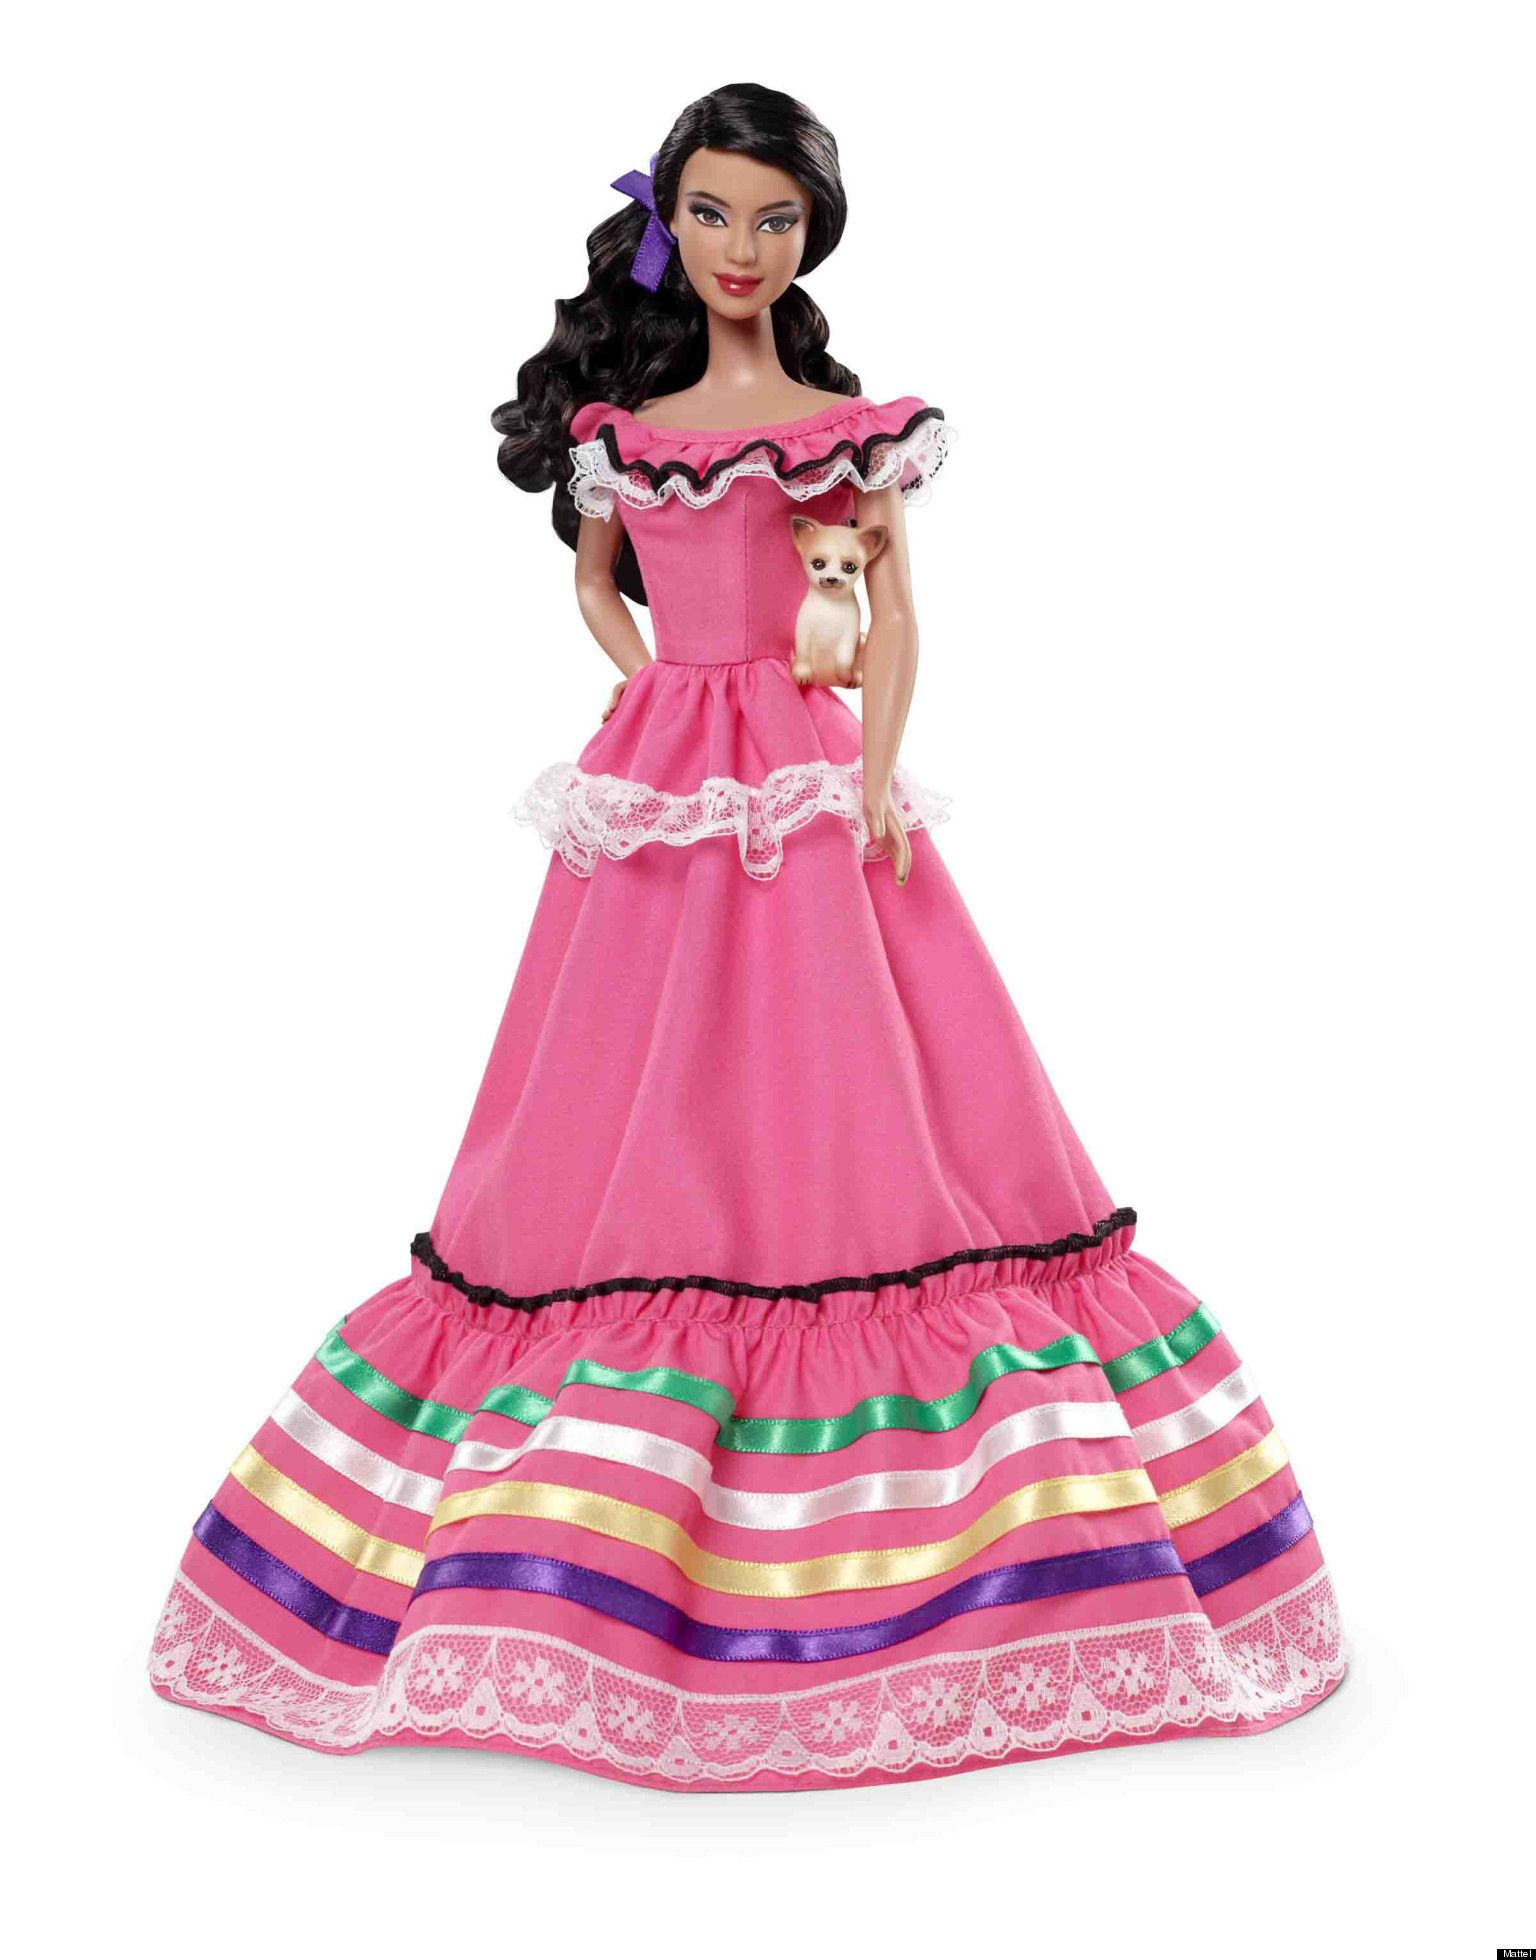 Mexico Barbie: Cruel Stereotype or Celebrating Cultural Diversity ...